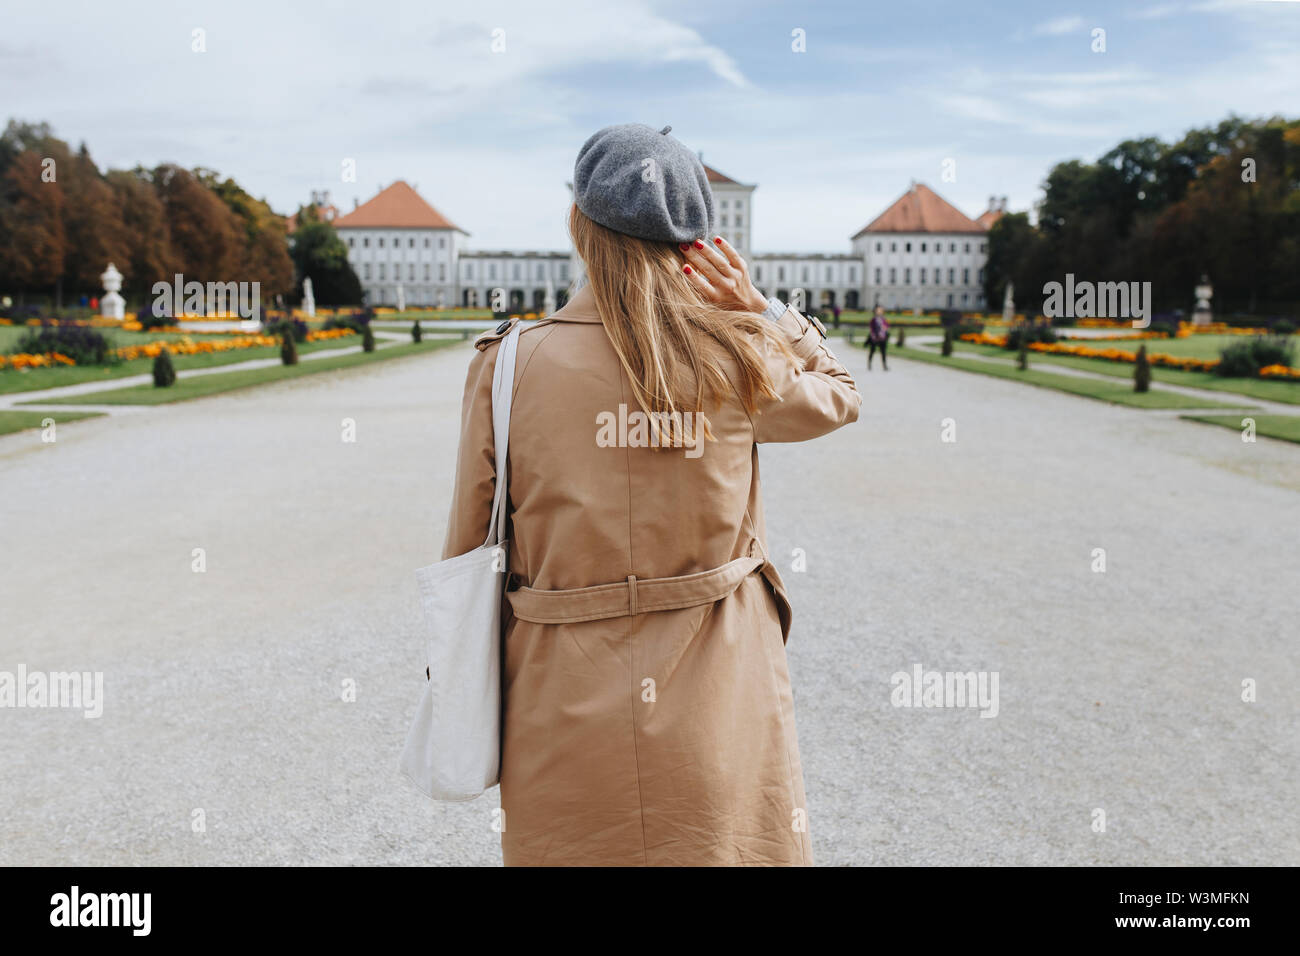 Woman wearing coat and beret by Nymphenburg Palace in Munich, Germany - Stock Image